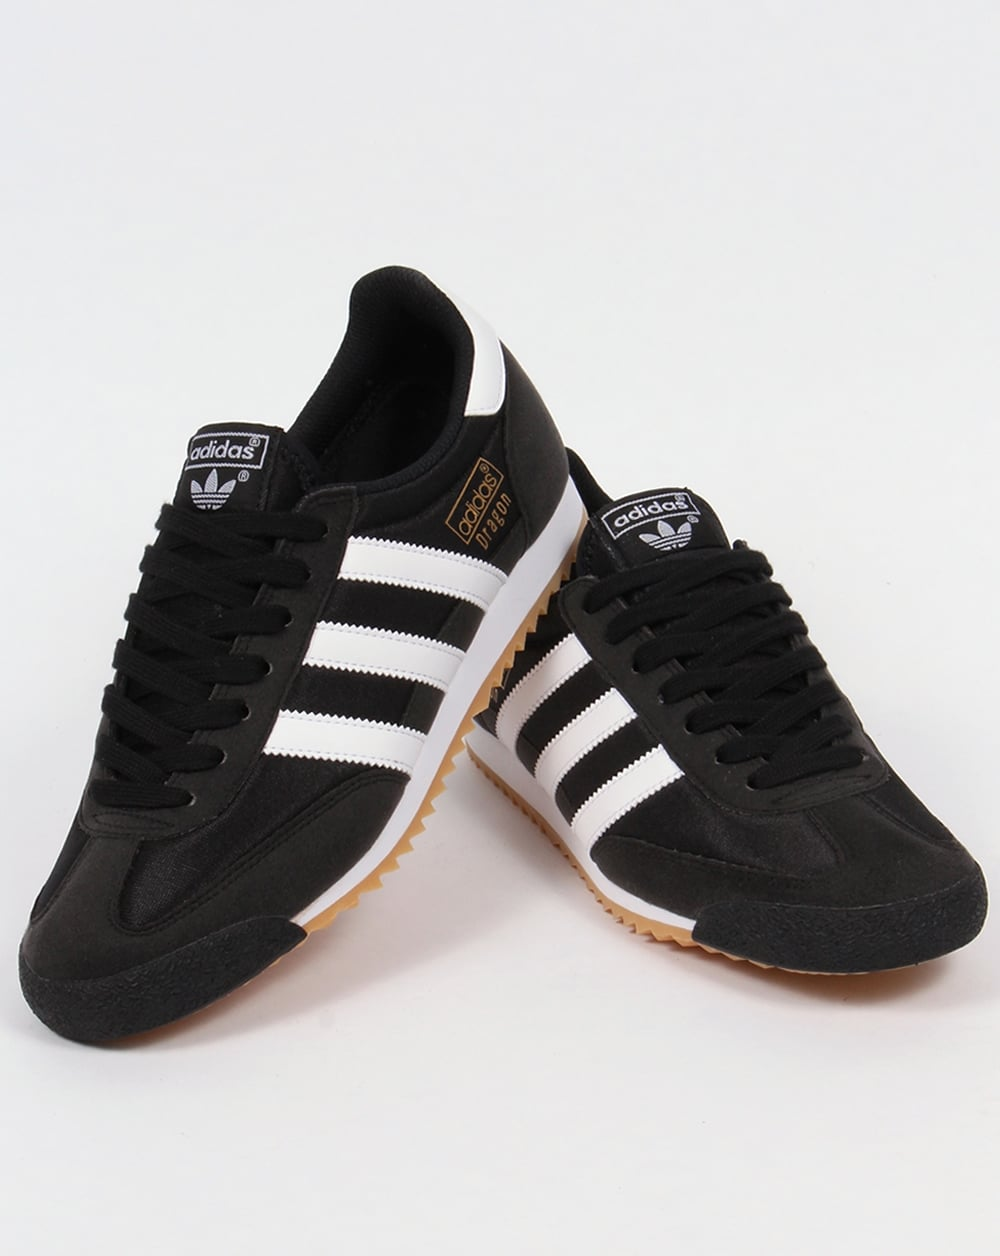 adidas dragon shoes black